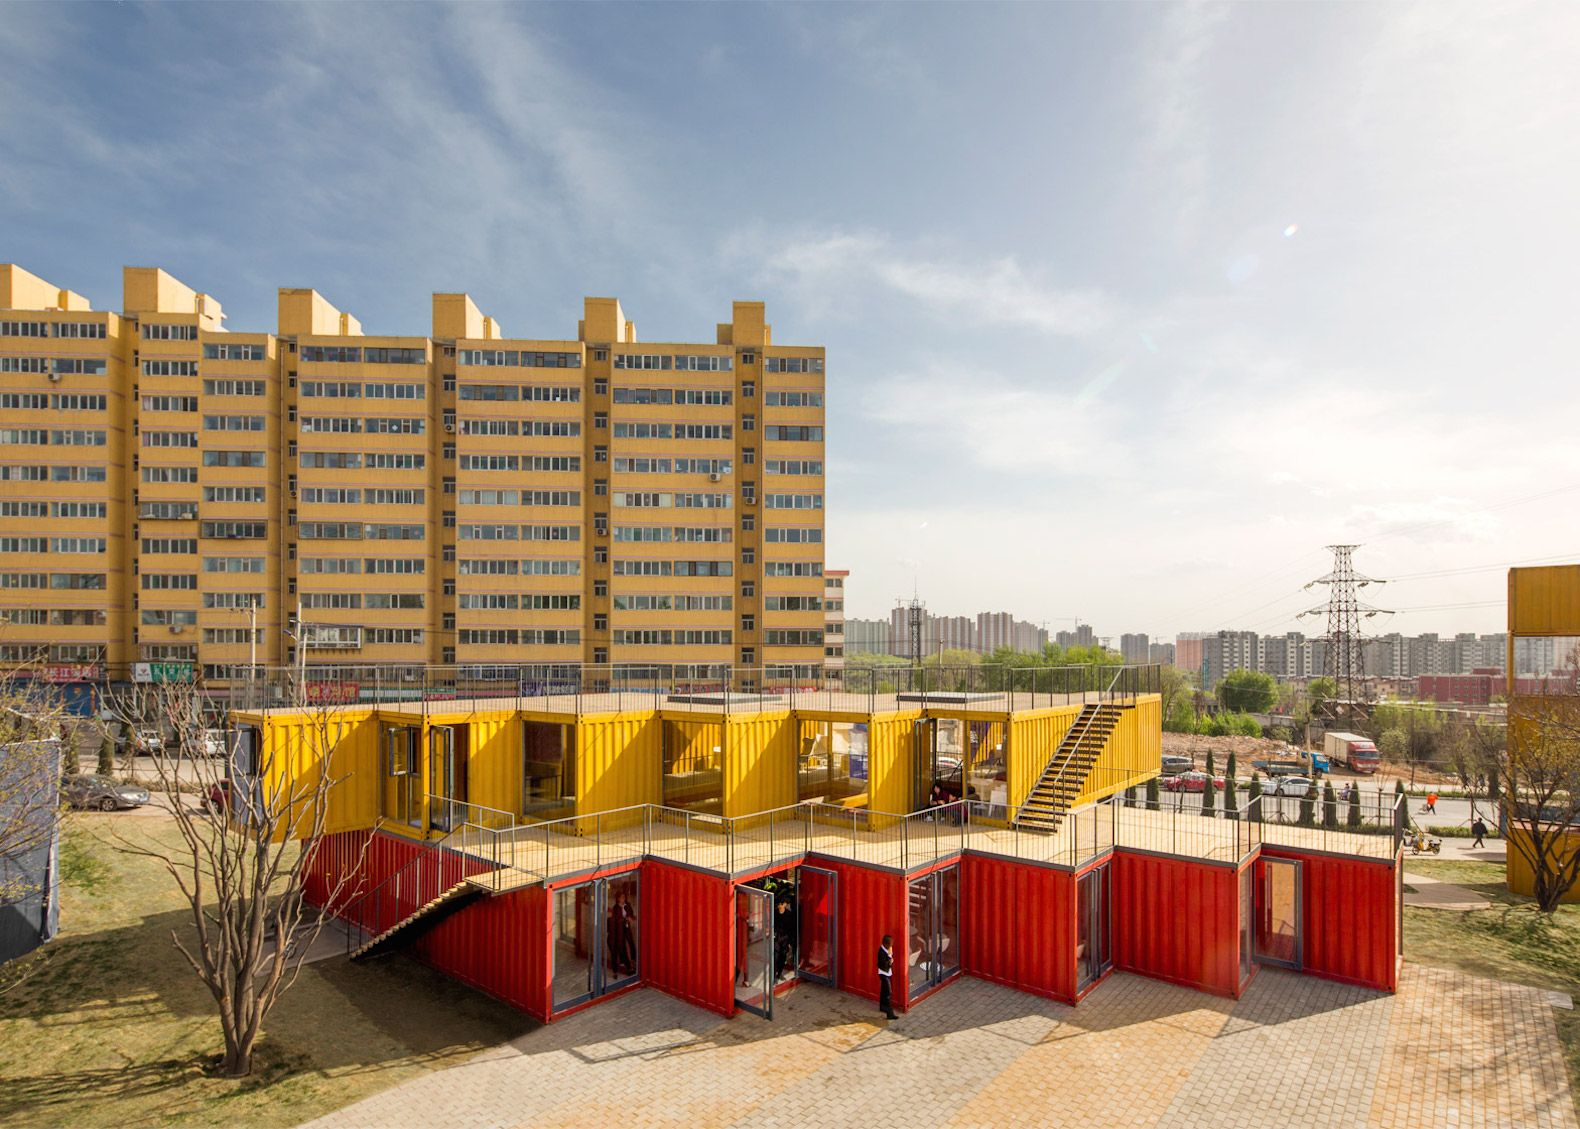 Shipping containers are transformed into a colorful office and showroom in China Container Stack Pavilion by People's Architecture Office – Inhabitat - Green Design, Innovation, Architecture, Green Building